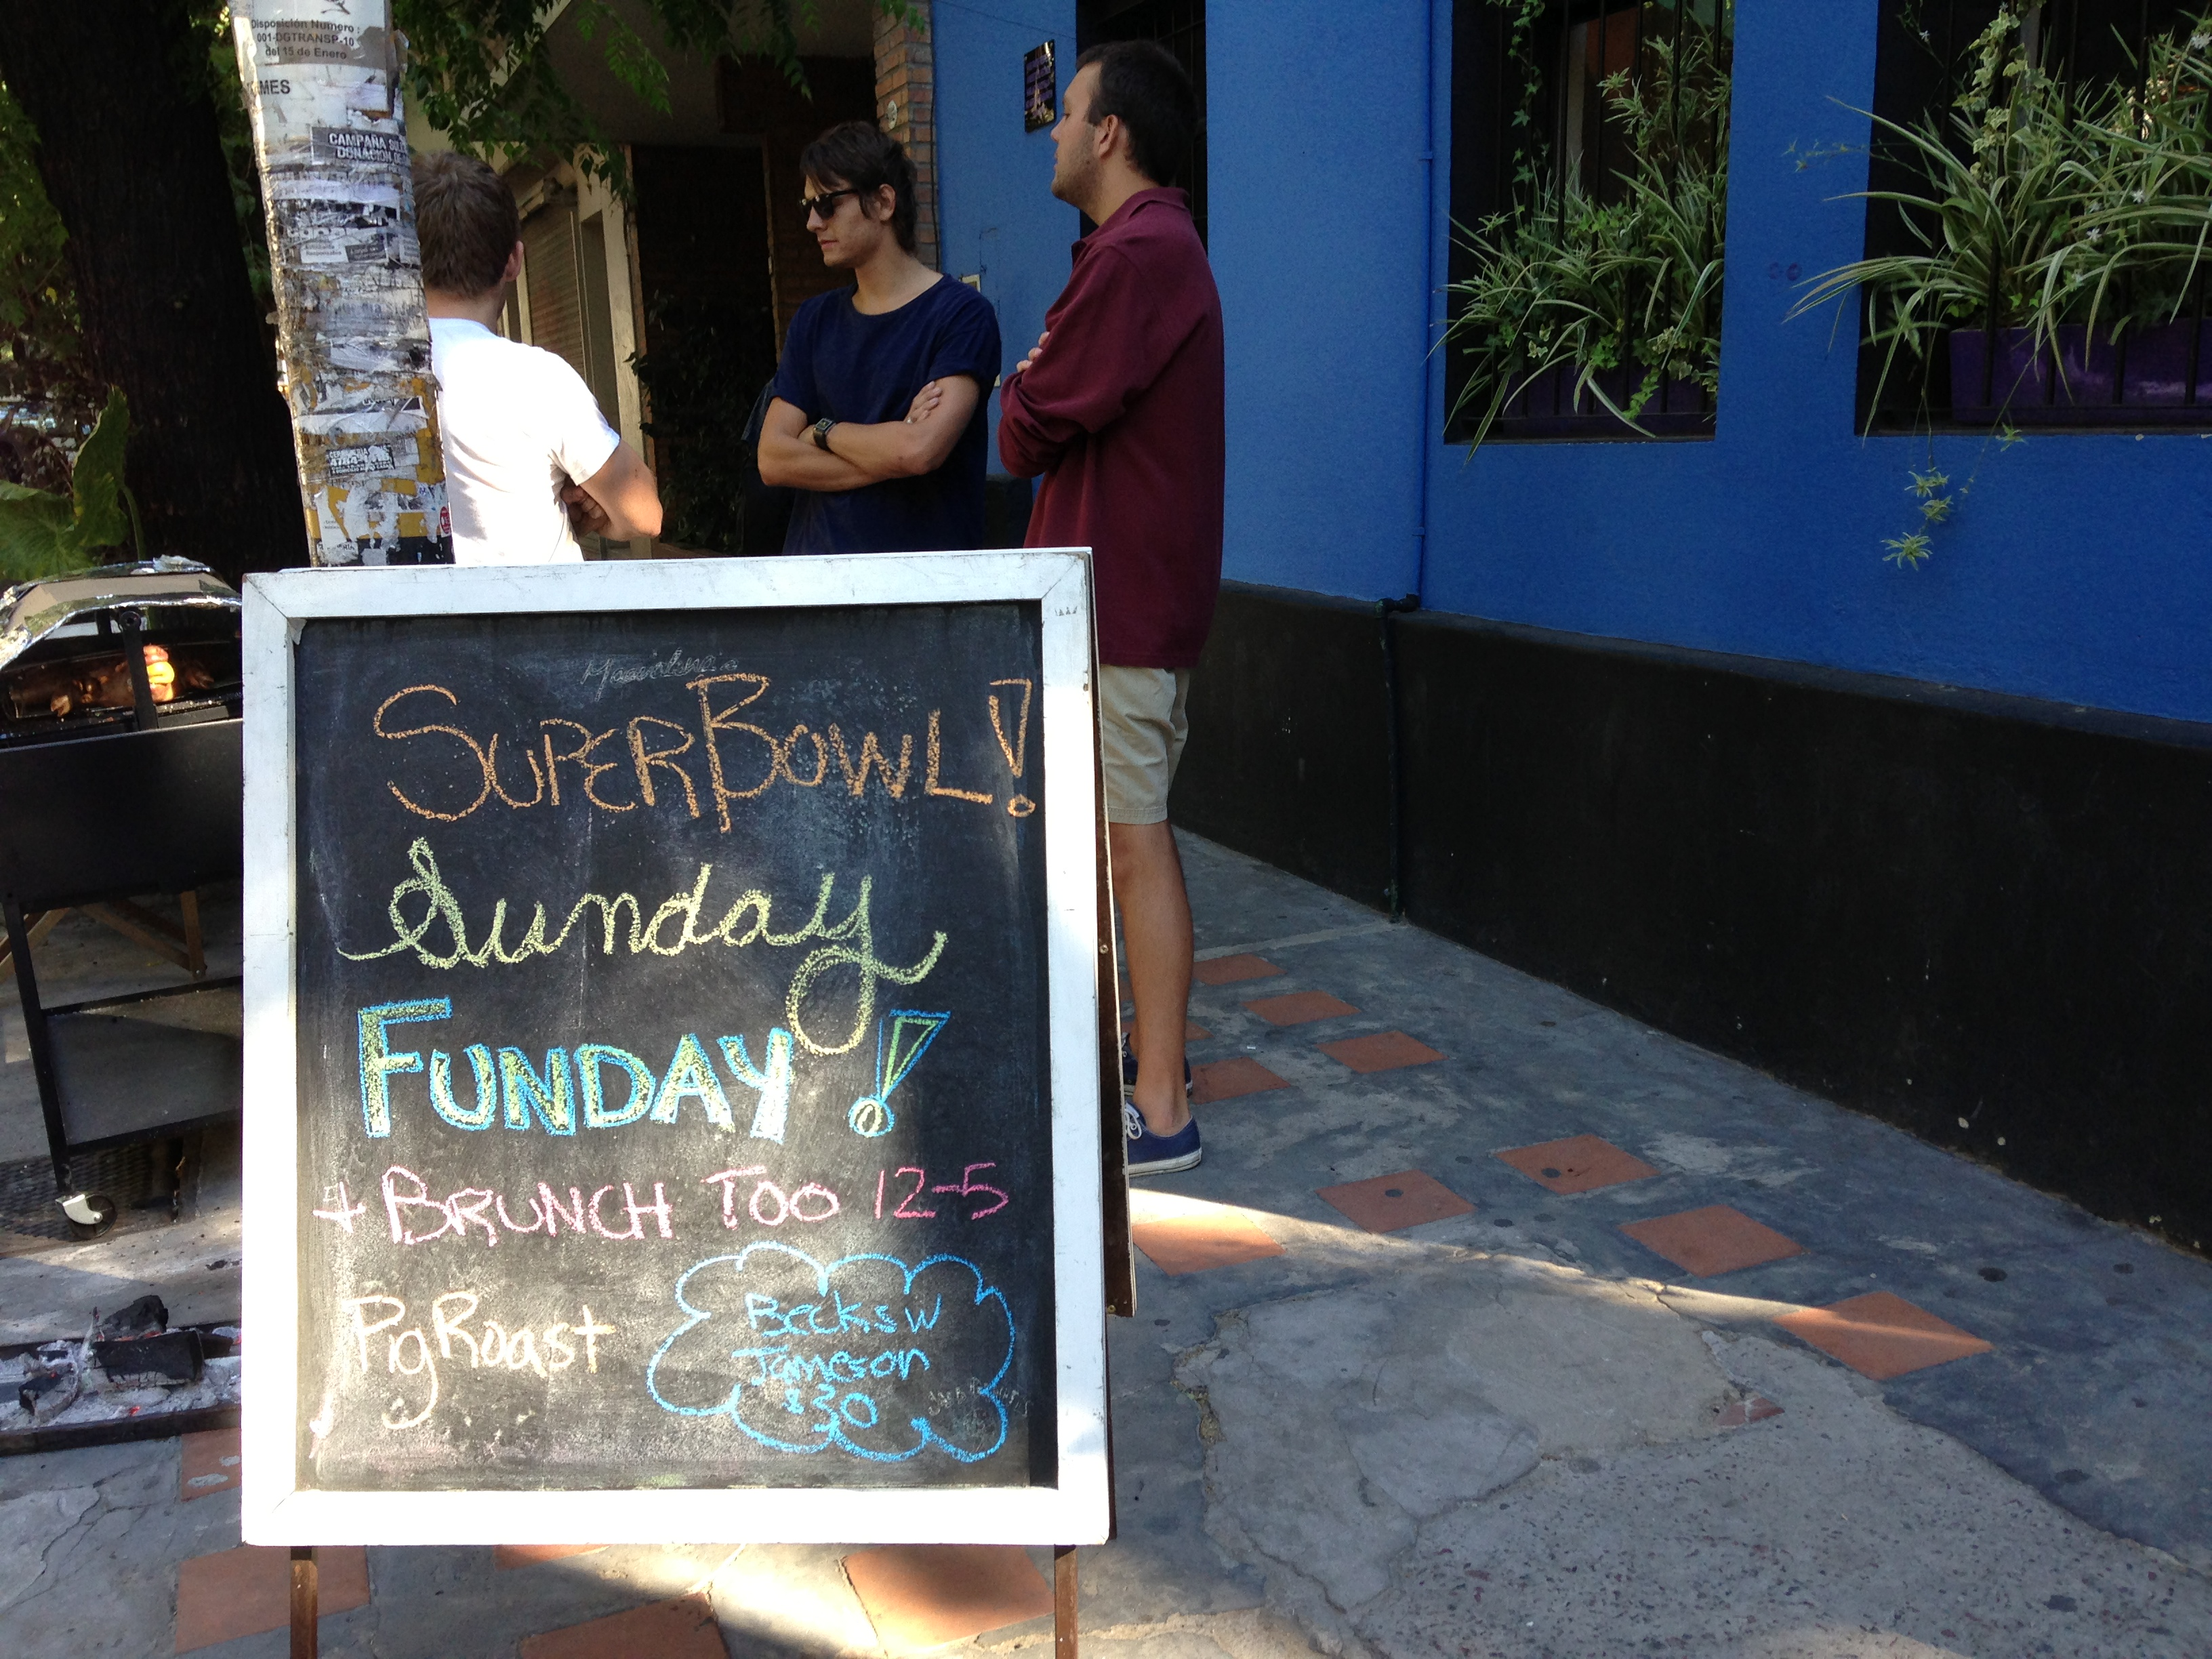 Blog: Finding patriotism during the Super Bowl in Buenos Aires